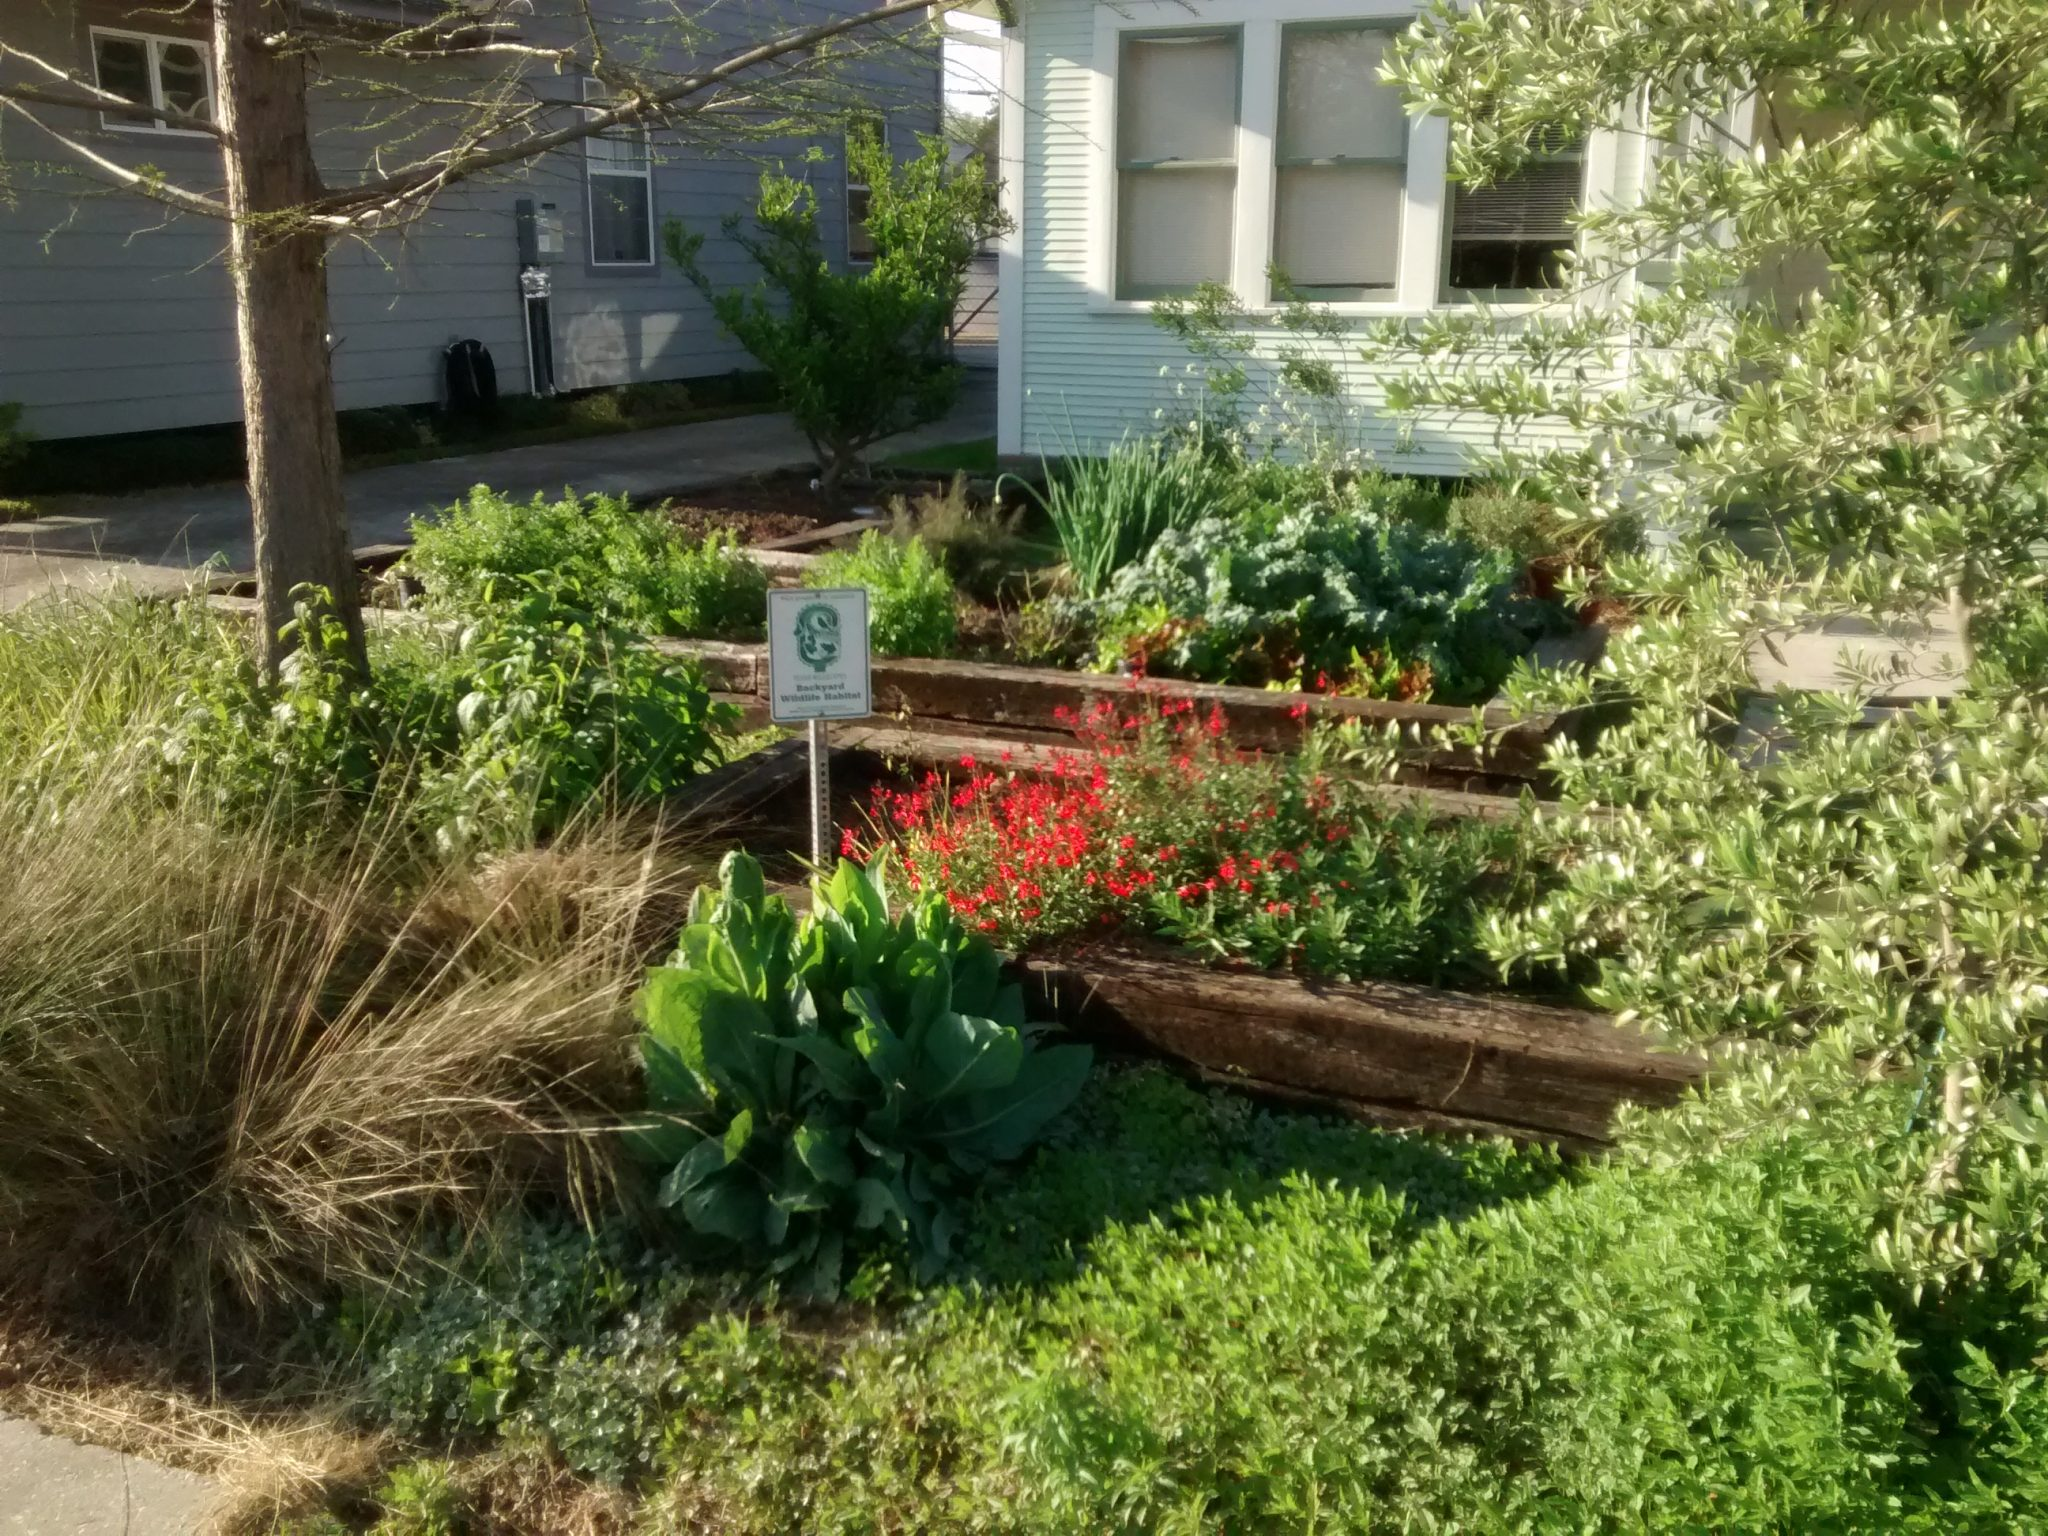 April Yard of the Month: 717 E. 23rd